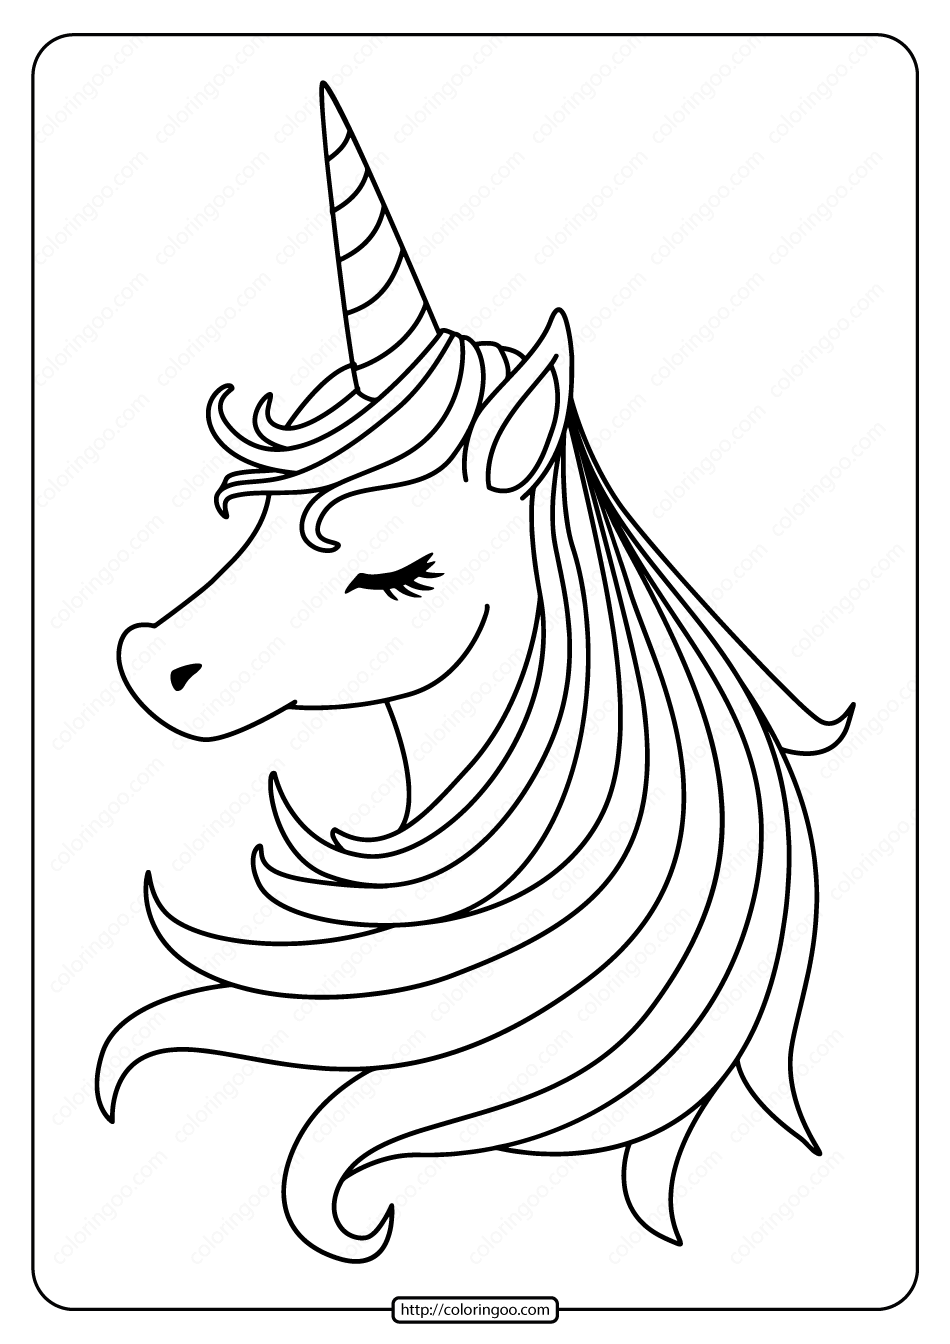 Free Printable Sleeping Unicorn Pdf Coloring Page Unicorn Coloring Pages Puppy Coloring Pages Mermaid Coloring Pages